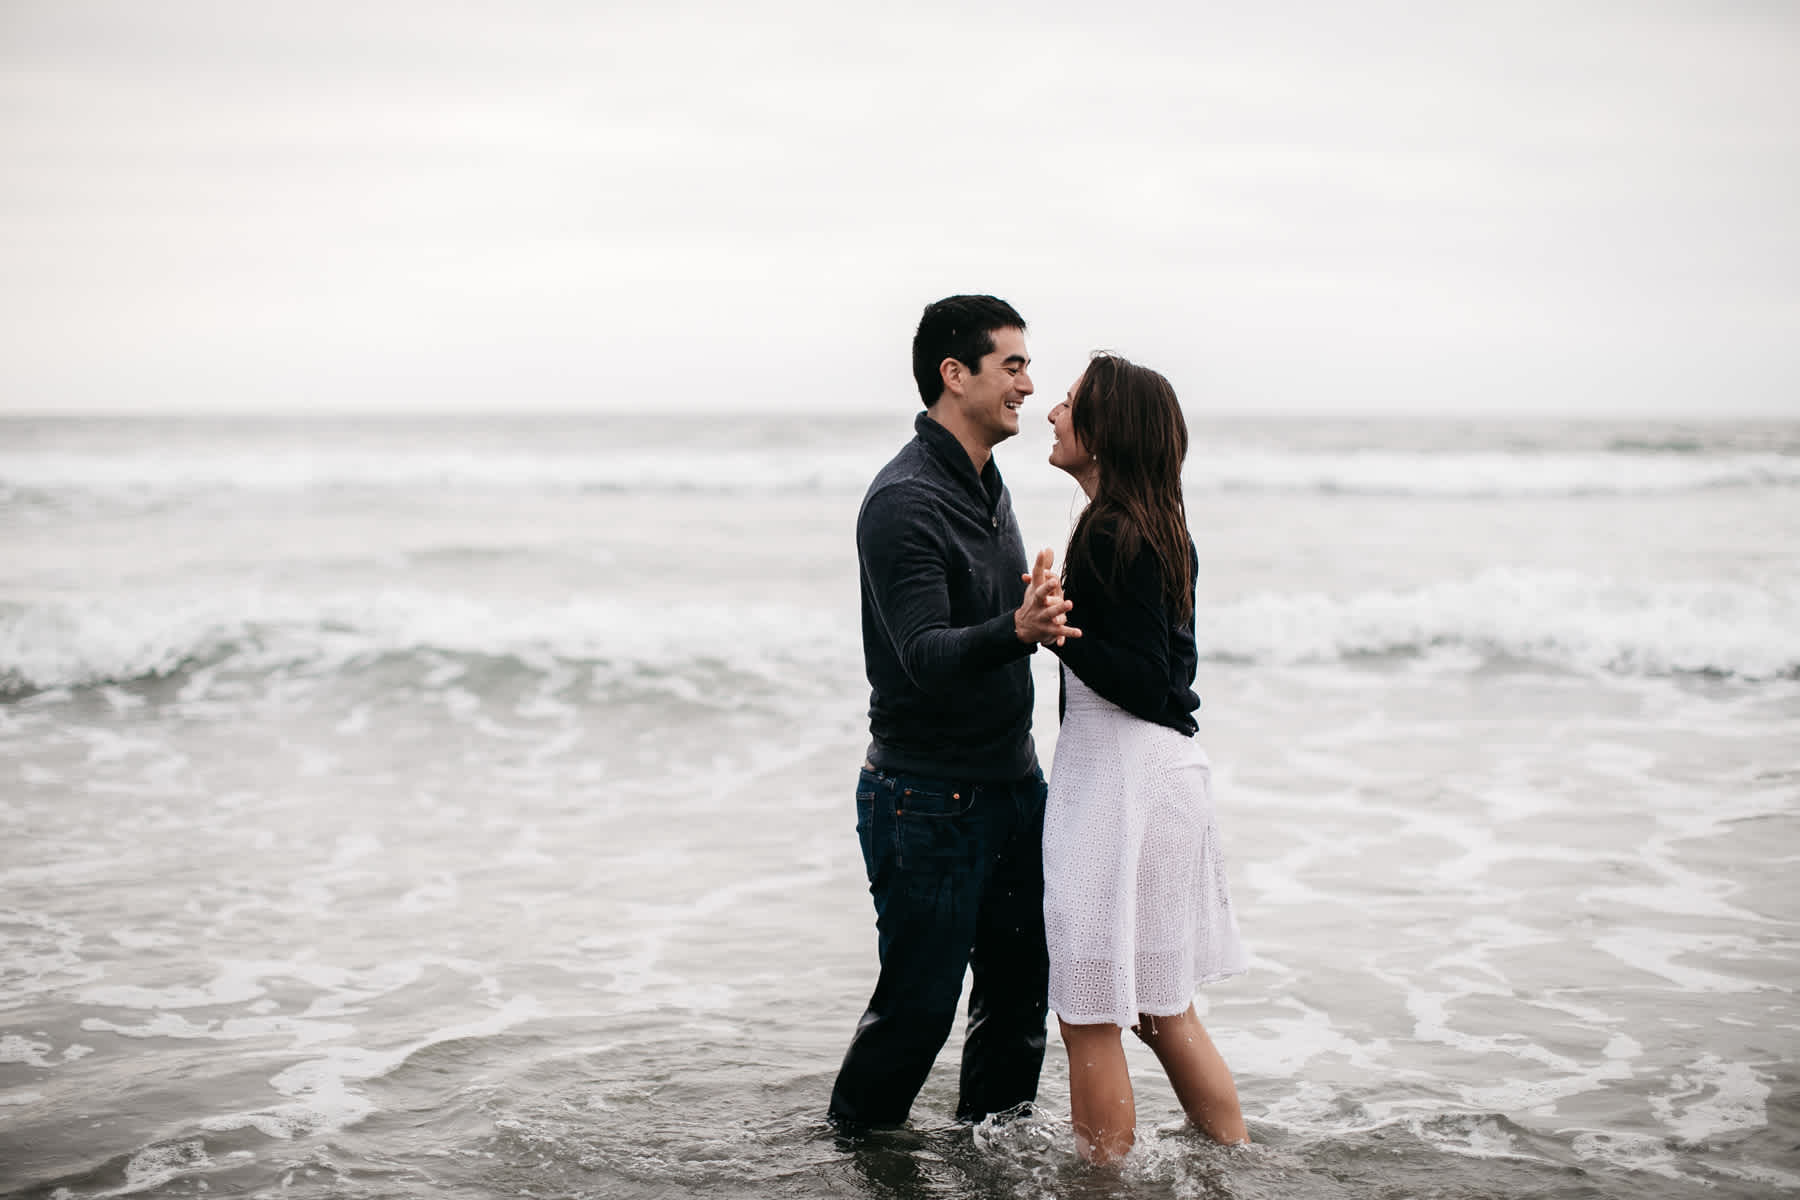 fort-funston-foggy-fun-beach-water-engagement-session-67